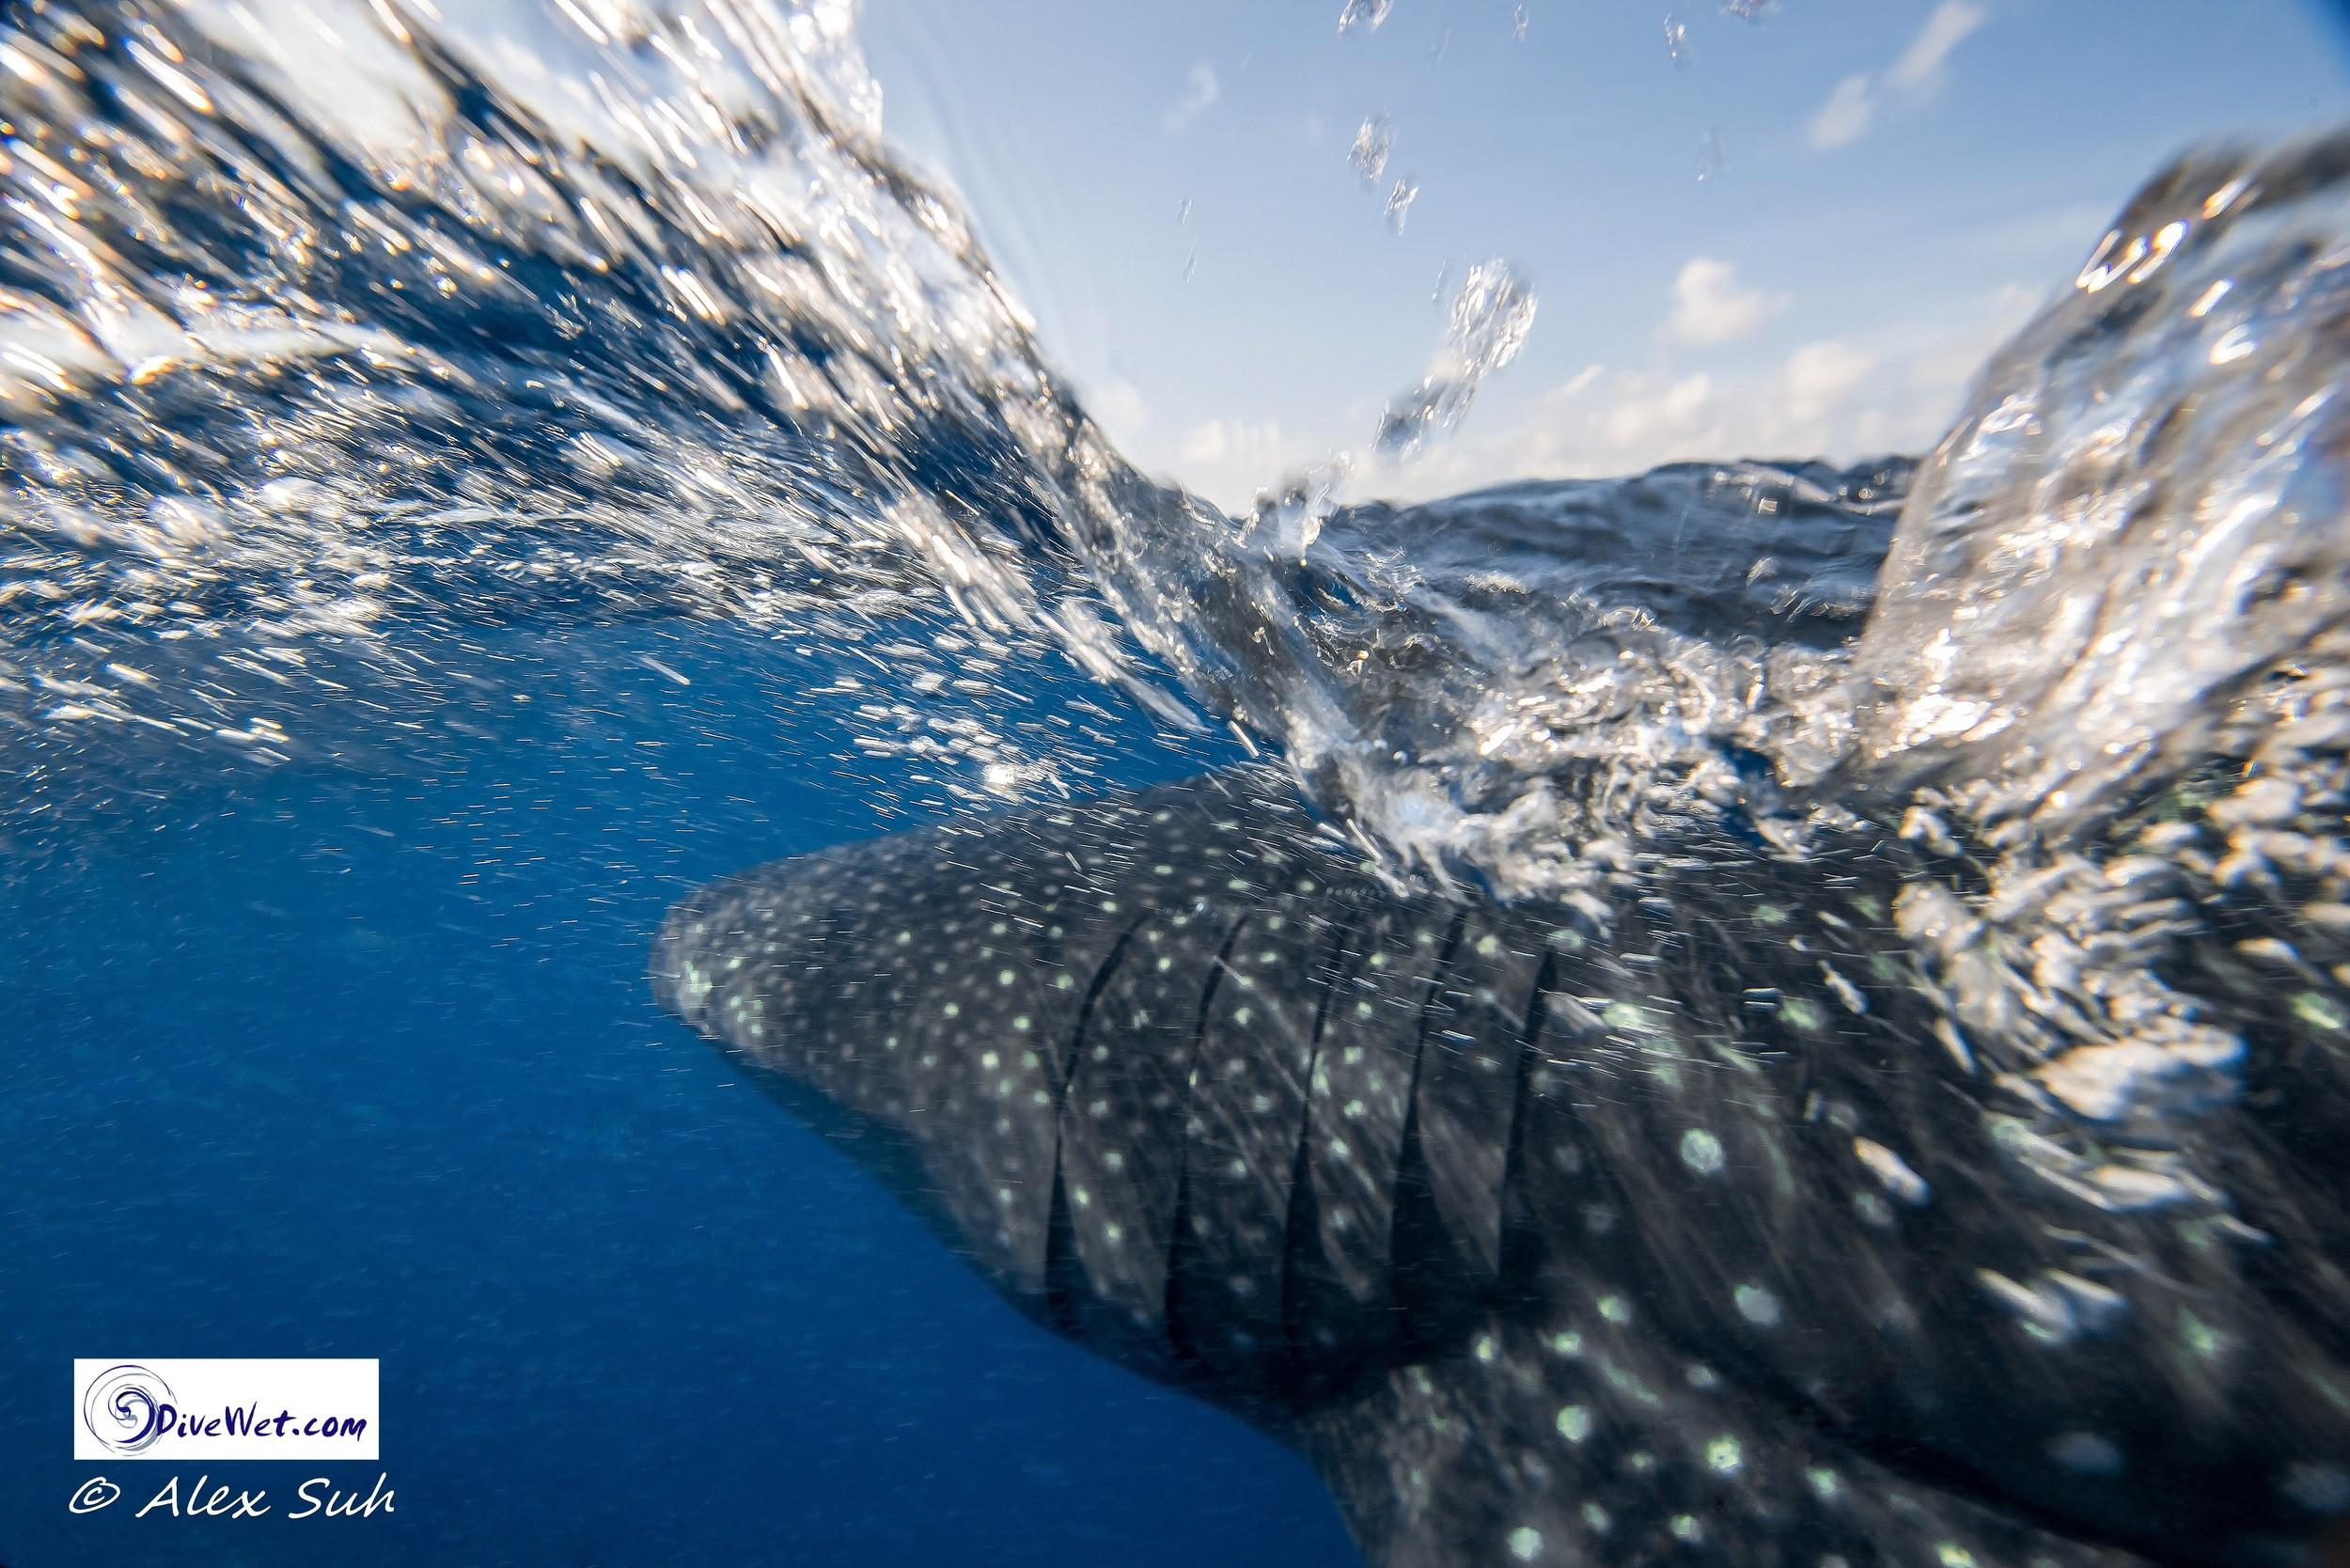 Over Under Whale Shark (Rhincodon typus)